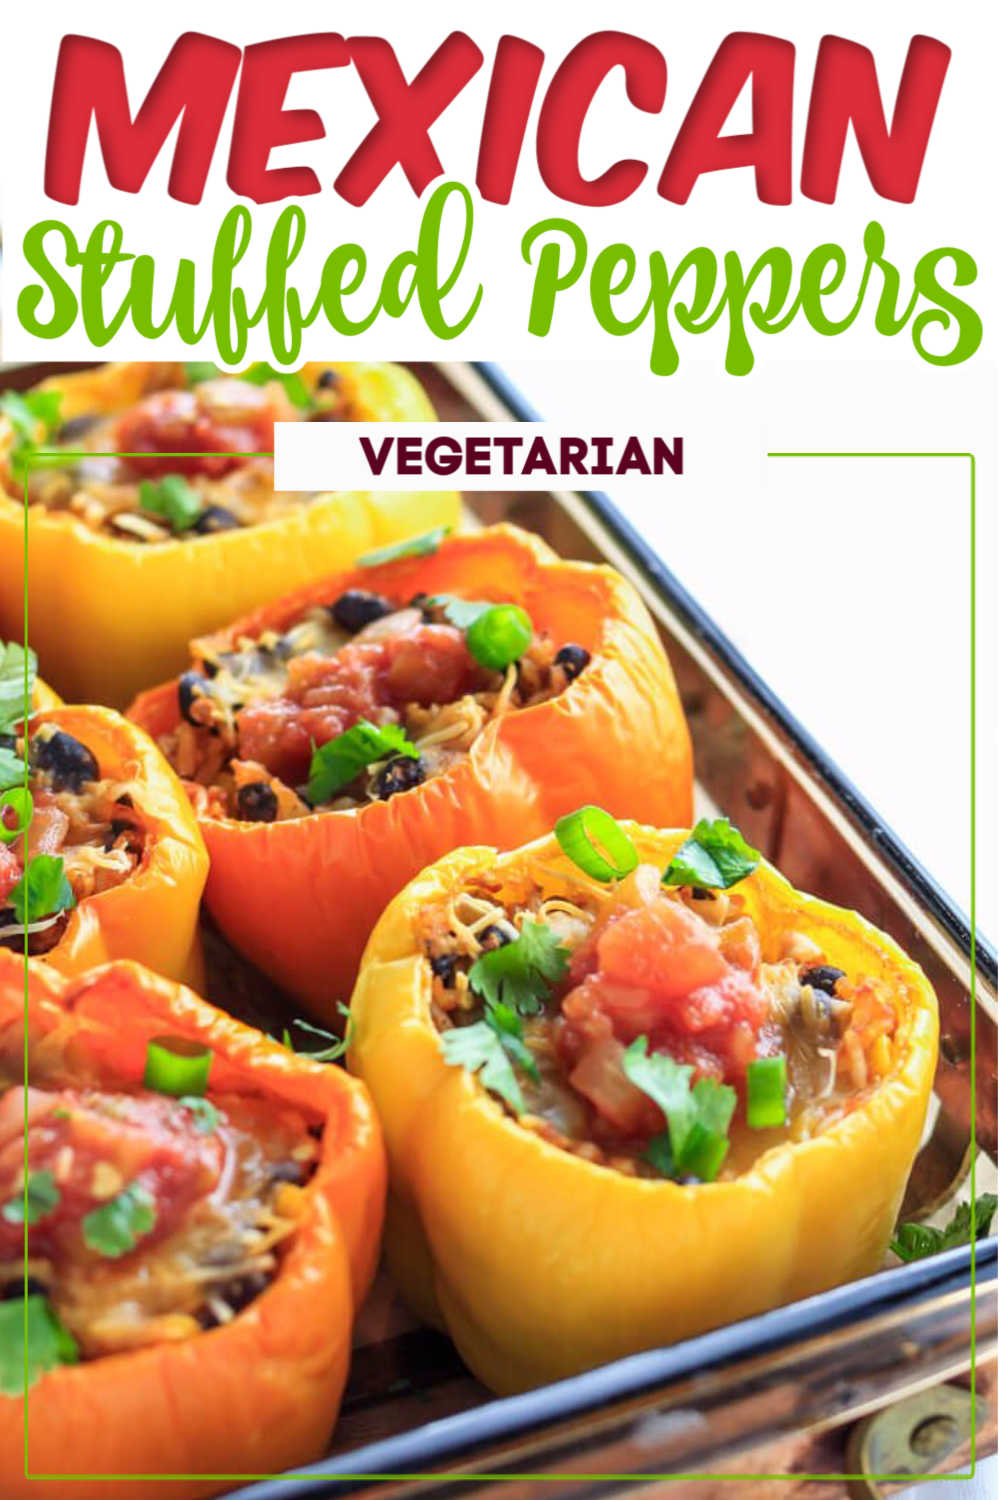 Mexican Stuffed Peppers Recipe {WW 5 points, Vegetarian, Gluten Free}